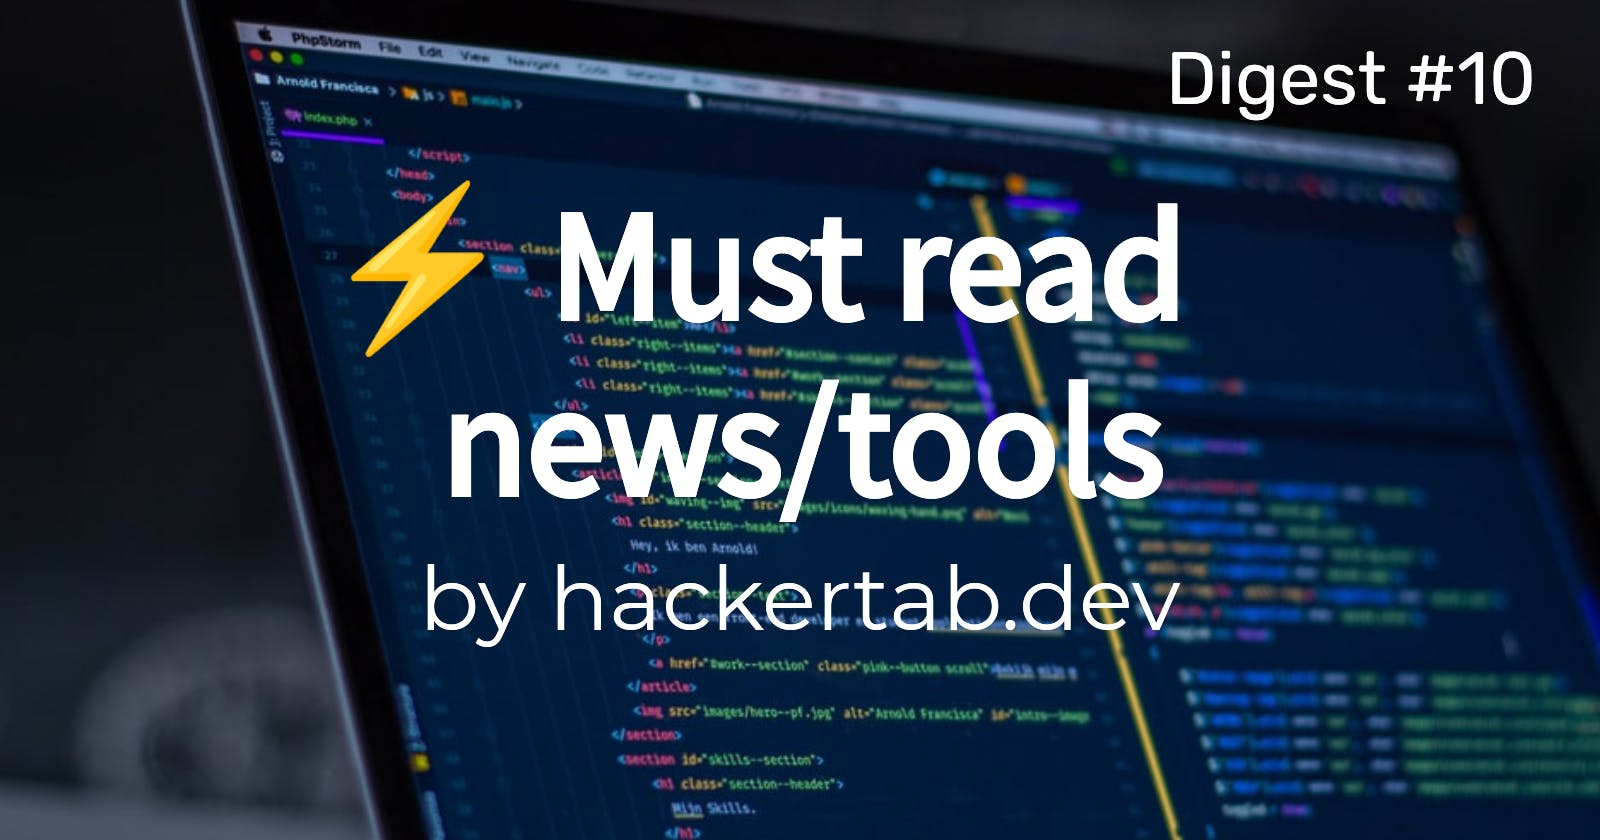 ⚡ Must read Tech news/tools of the day - Digest #10